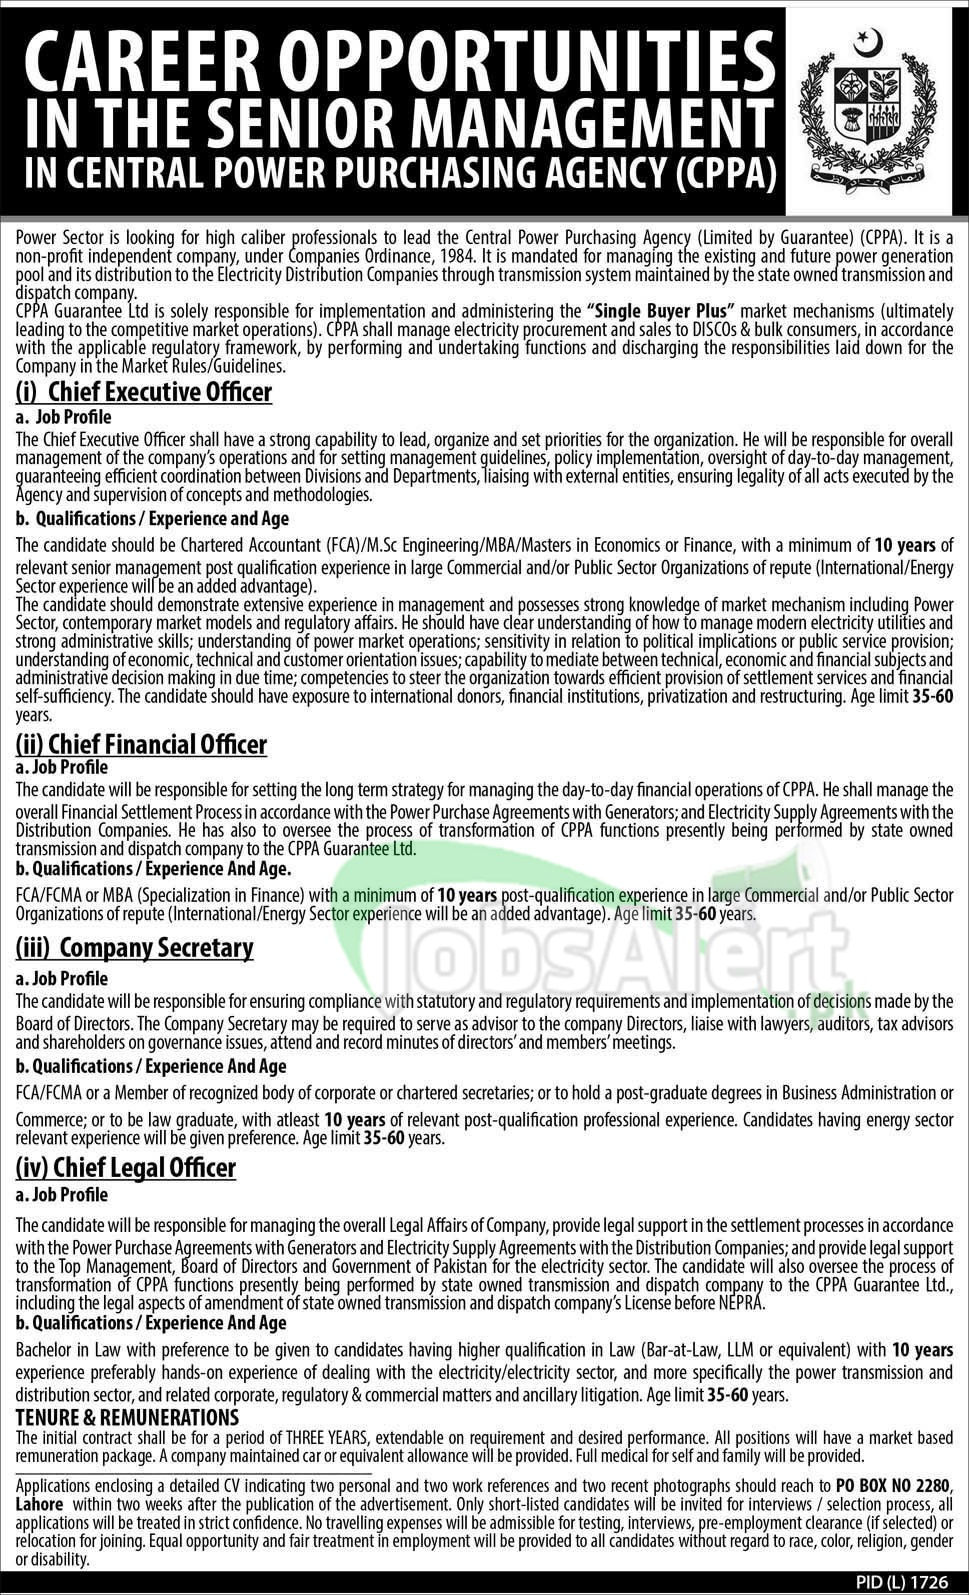 Govt. Jobs 2014 in Central Power Purchasing Agency Lahore